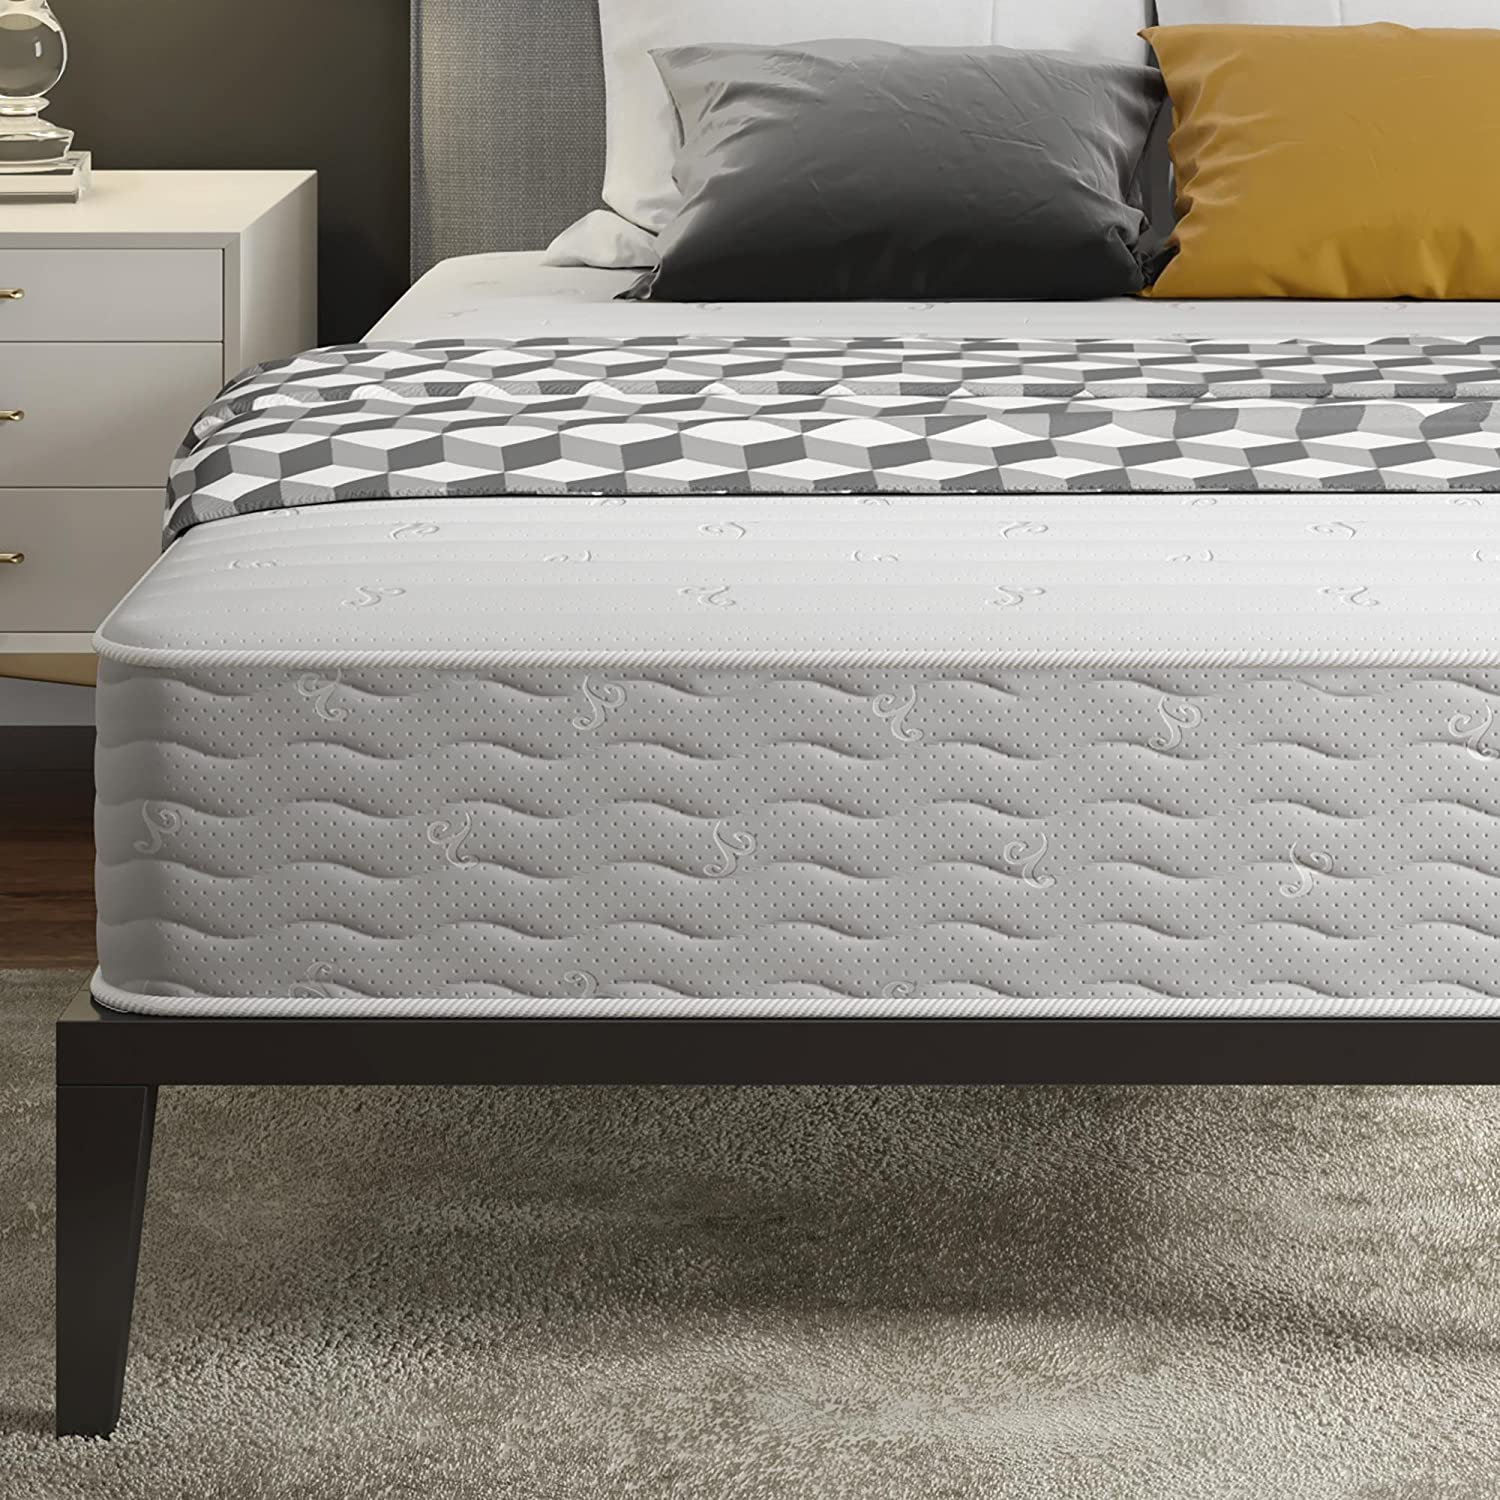 crowley mattress at justbed justice mattresses king pinnacle from point